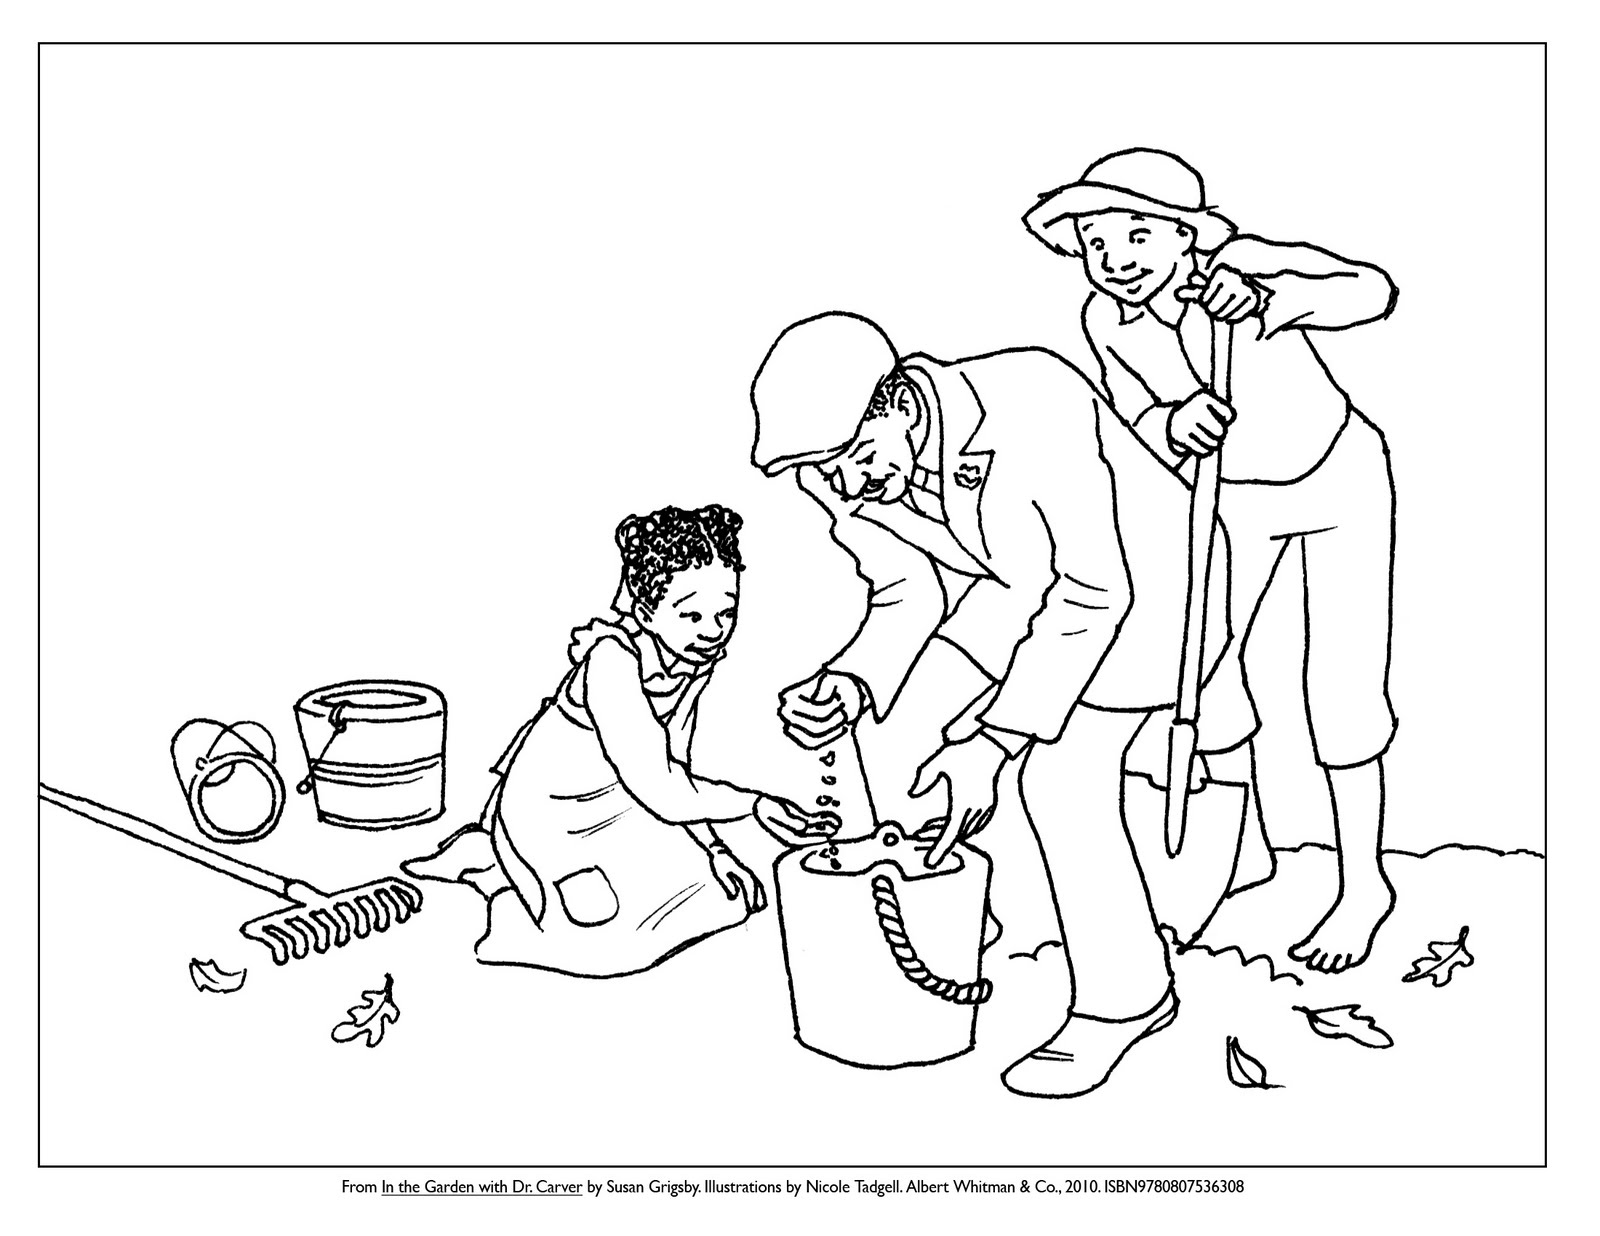 Nicole Tadgell Illustration Coloring Pages For Dr Carver